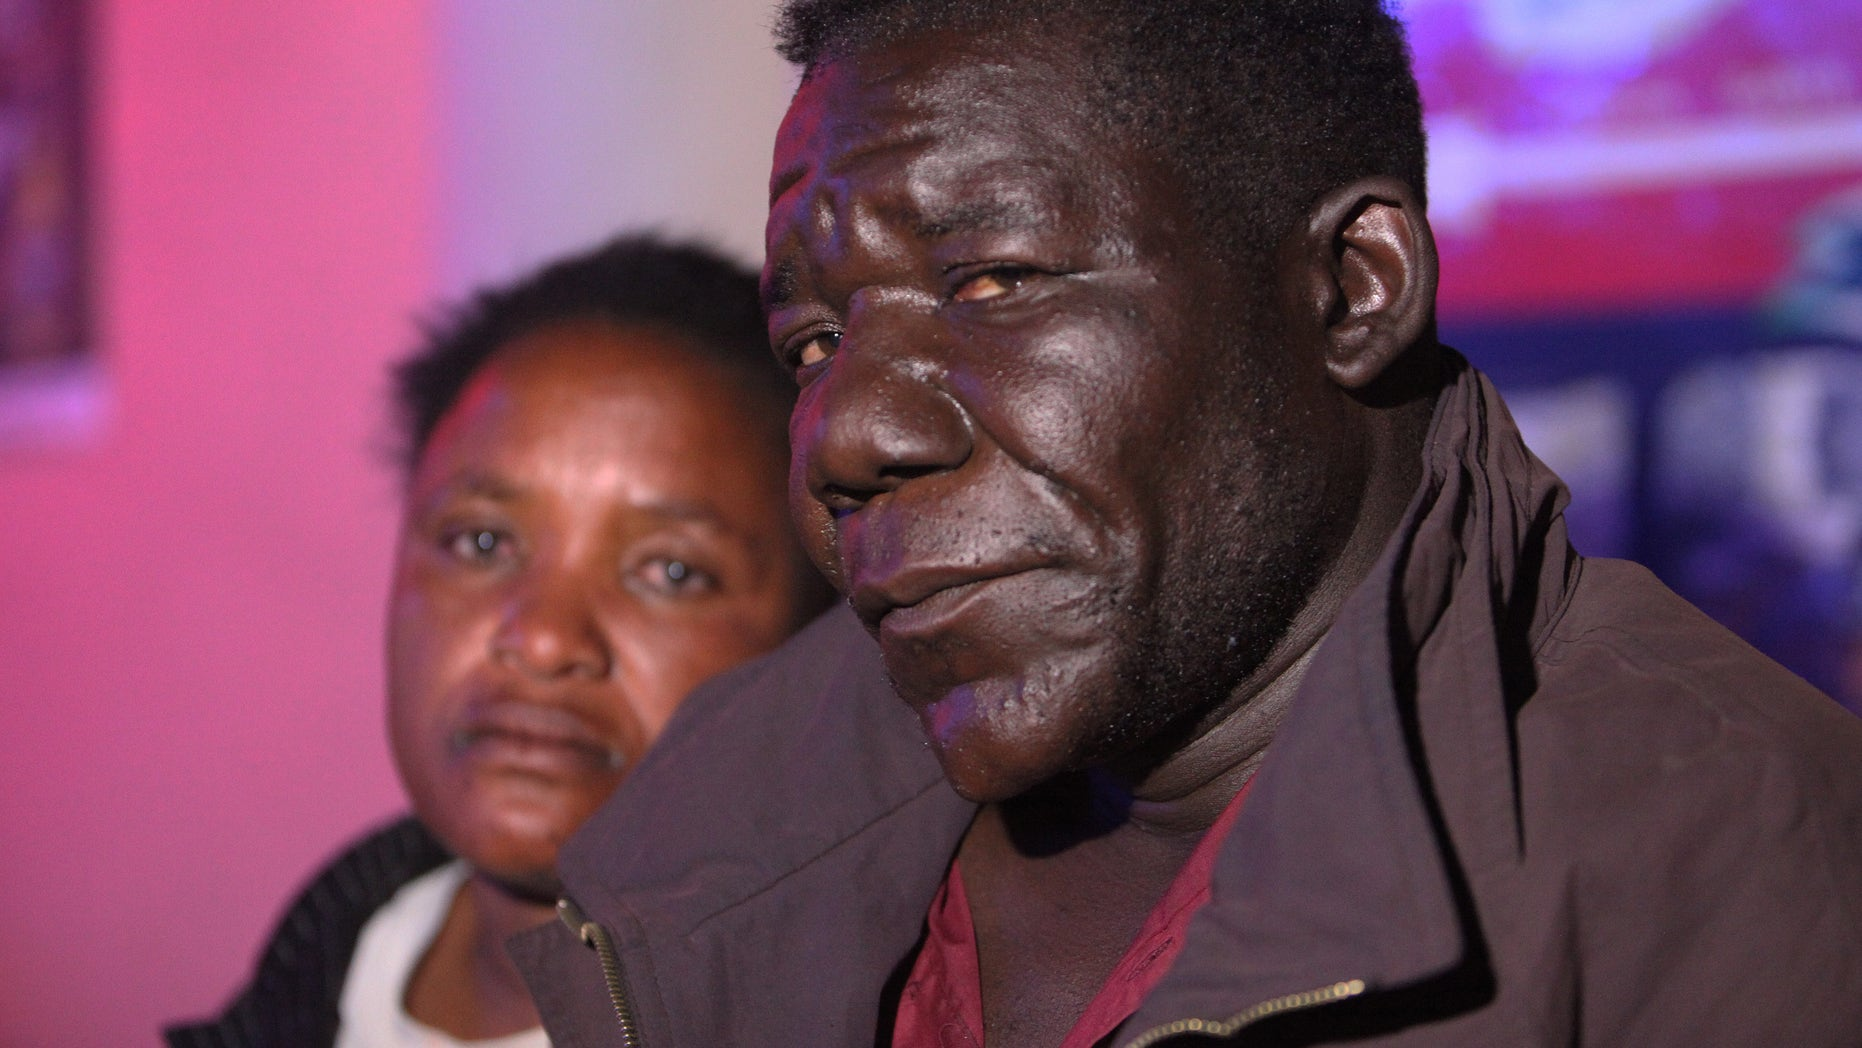 William Masvinhu, right, winner of  the Mr Ugly competition poses for a photo with his wife Alice at a local club in Harare, Tuesday, May, 29, 2012. The competition which is in its second year was won by William Masvinhu who walked away with US$100 in cash and one night accommodation voucher at a 3 star hotel while  Freddy Mwanda came second walking away with US$50.  (AP Photo/Tsvangirayi Mukwazhi)